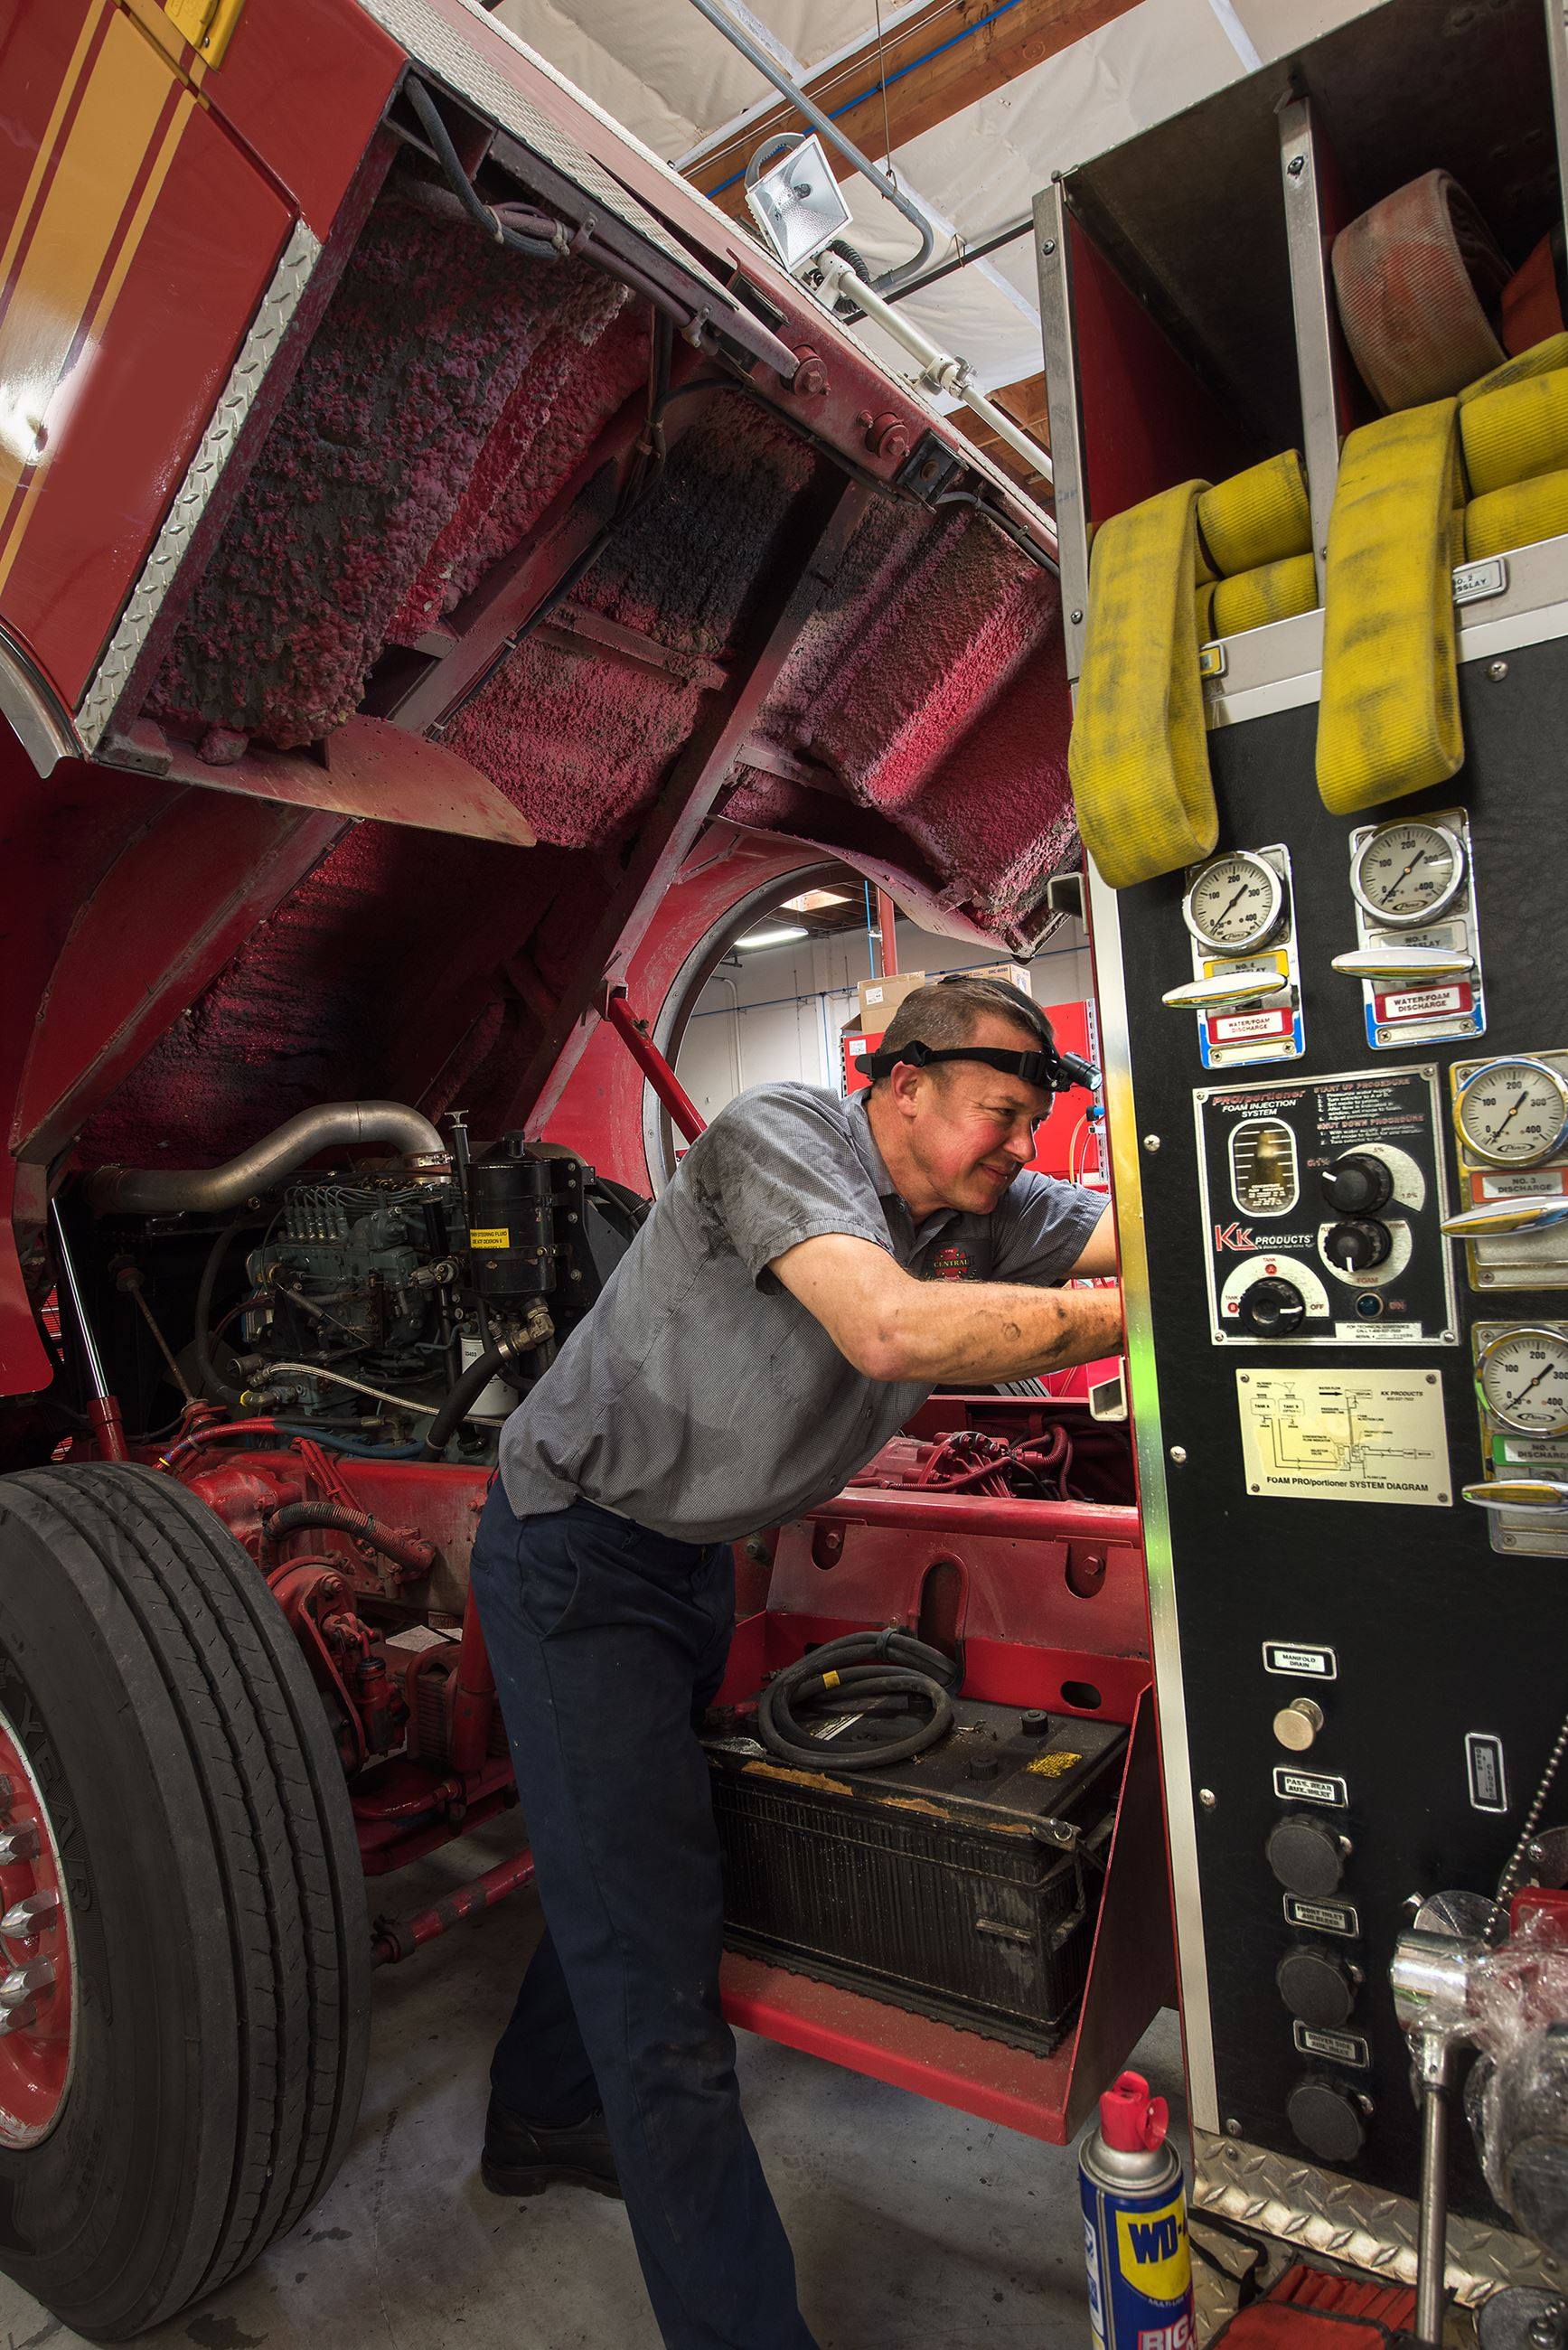 Fire Apparatus Technician working on fire engine.